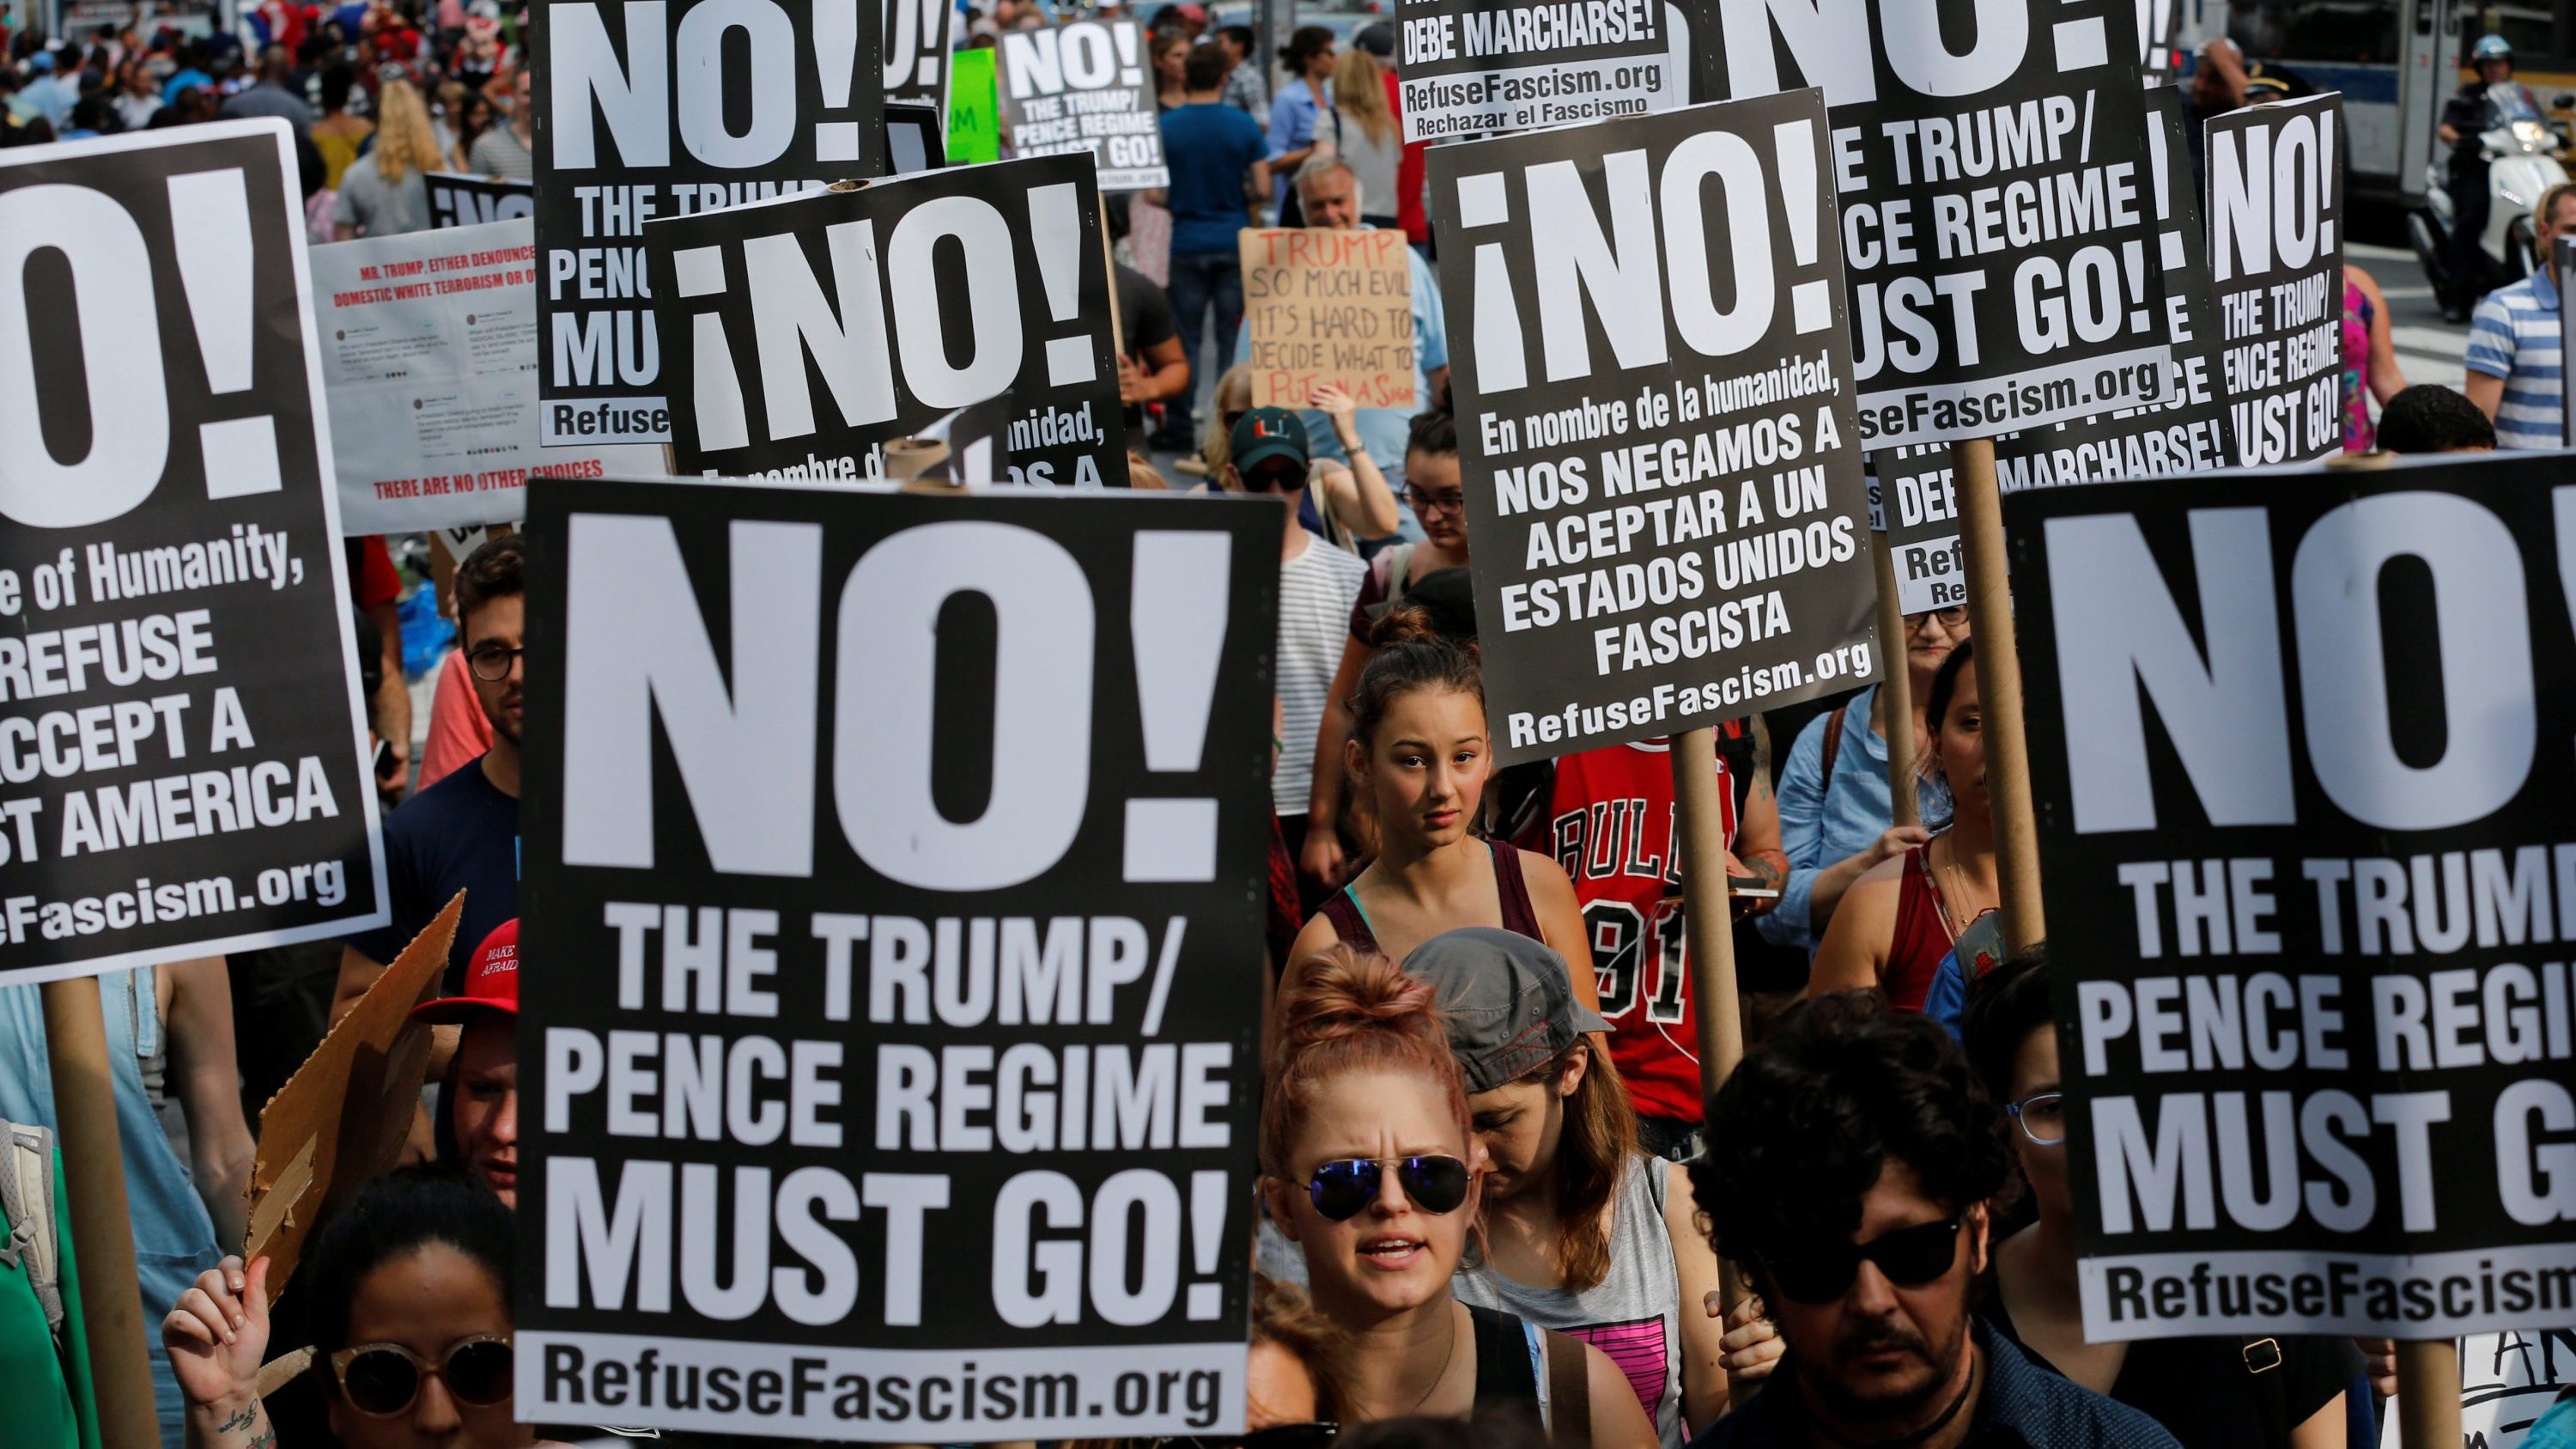 """Protesters hold signs reading """"No! The Trump/Pence regime must go!"""" during a march against white nationalism in New York City, U.S., August 13, 2017."""